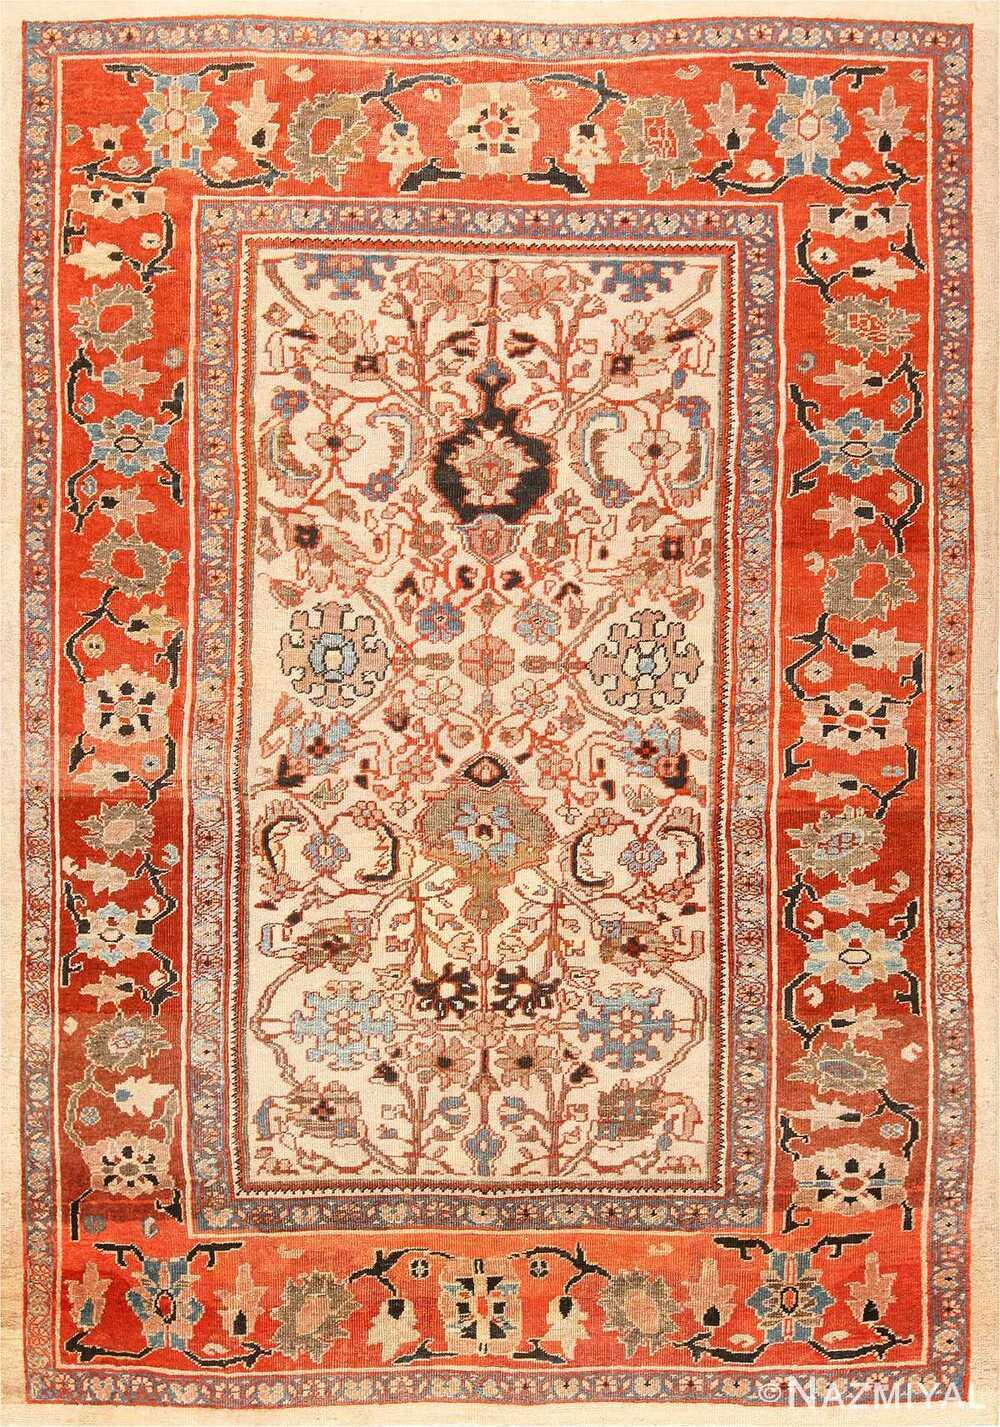 ANTIQUE PERSIAN SULTANABAD CARPET. 10 ft 8 in x 7 ft 10 in (3.25 m x 2.39 m)